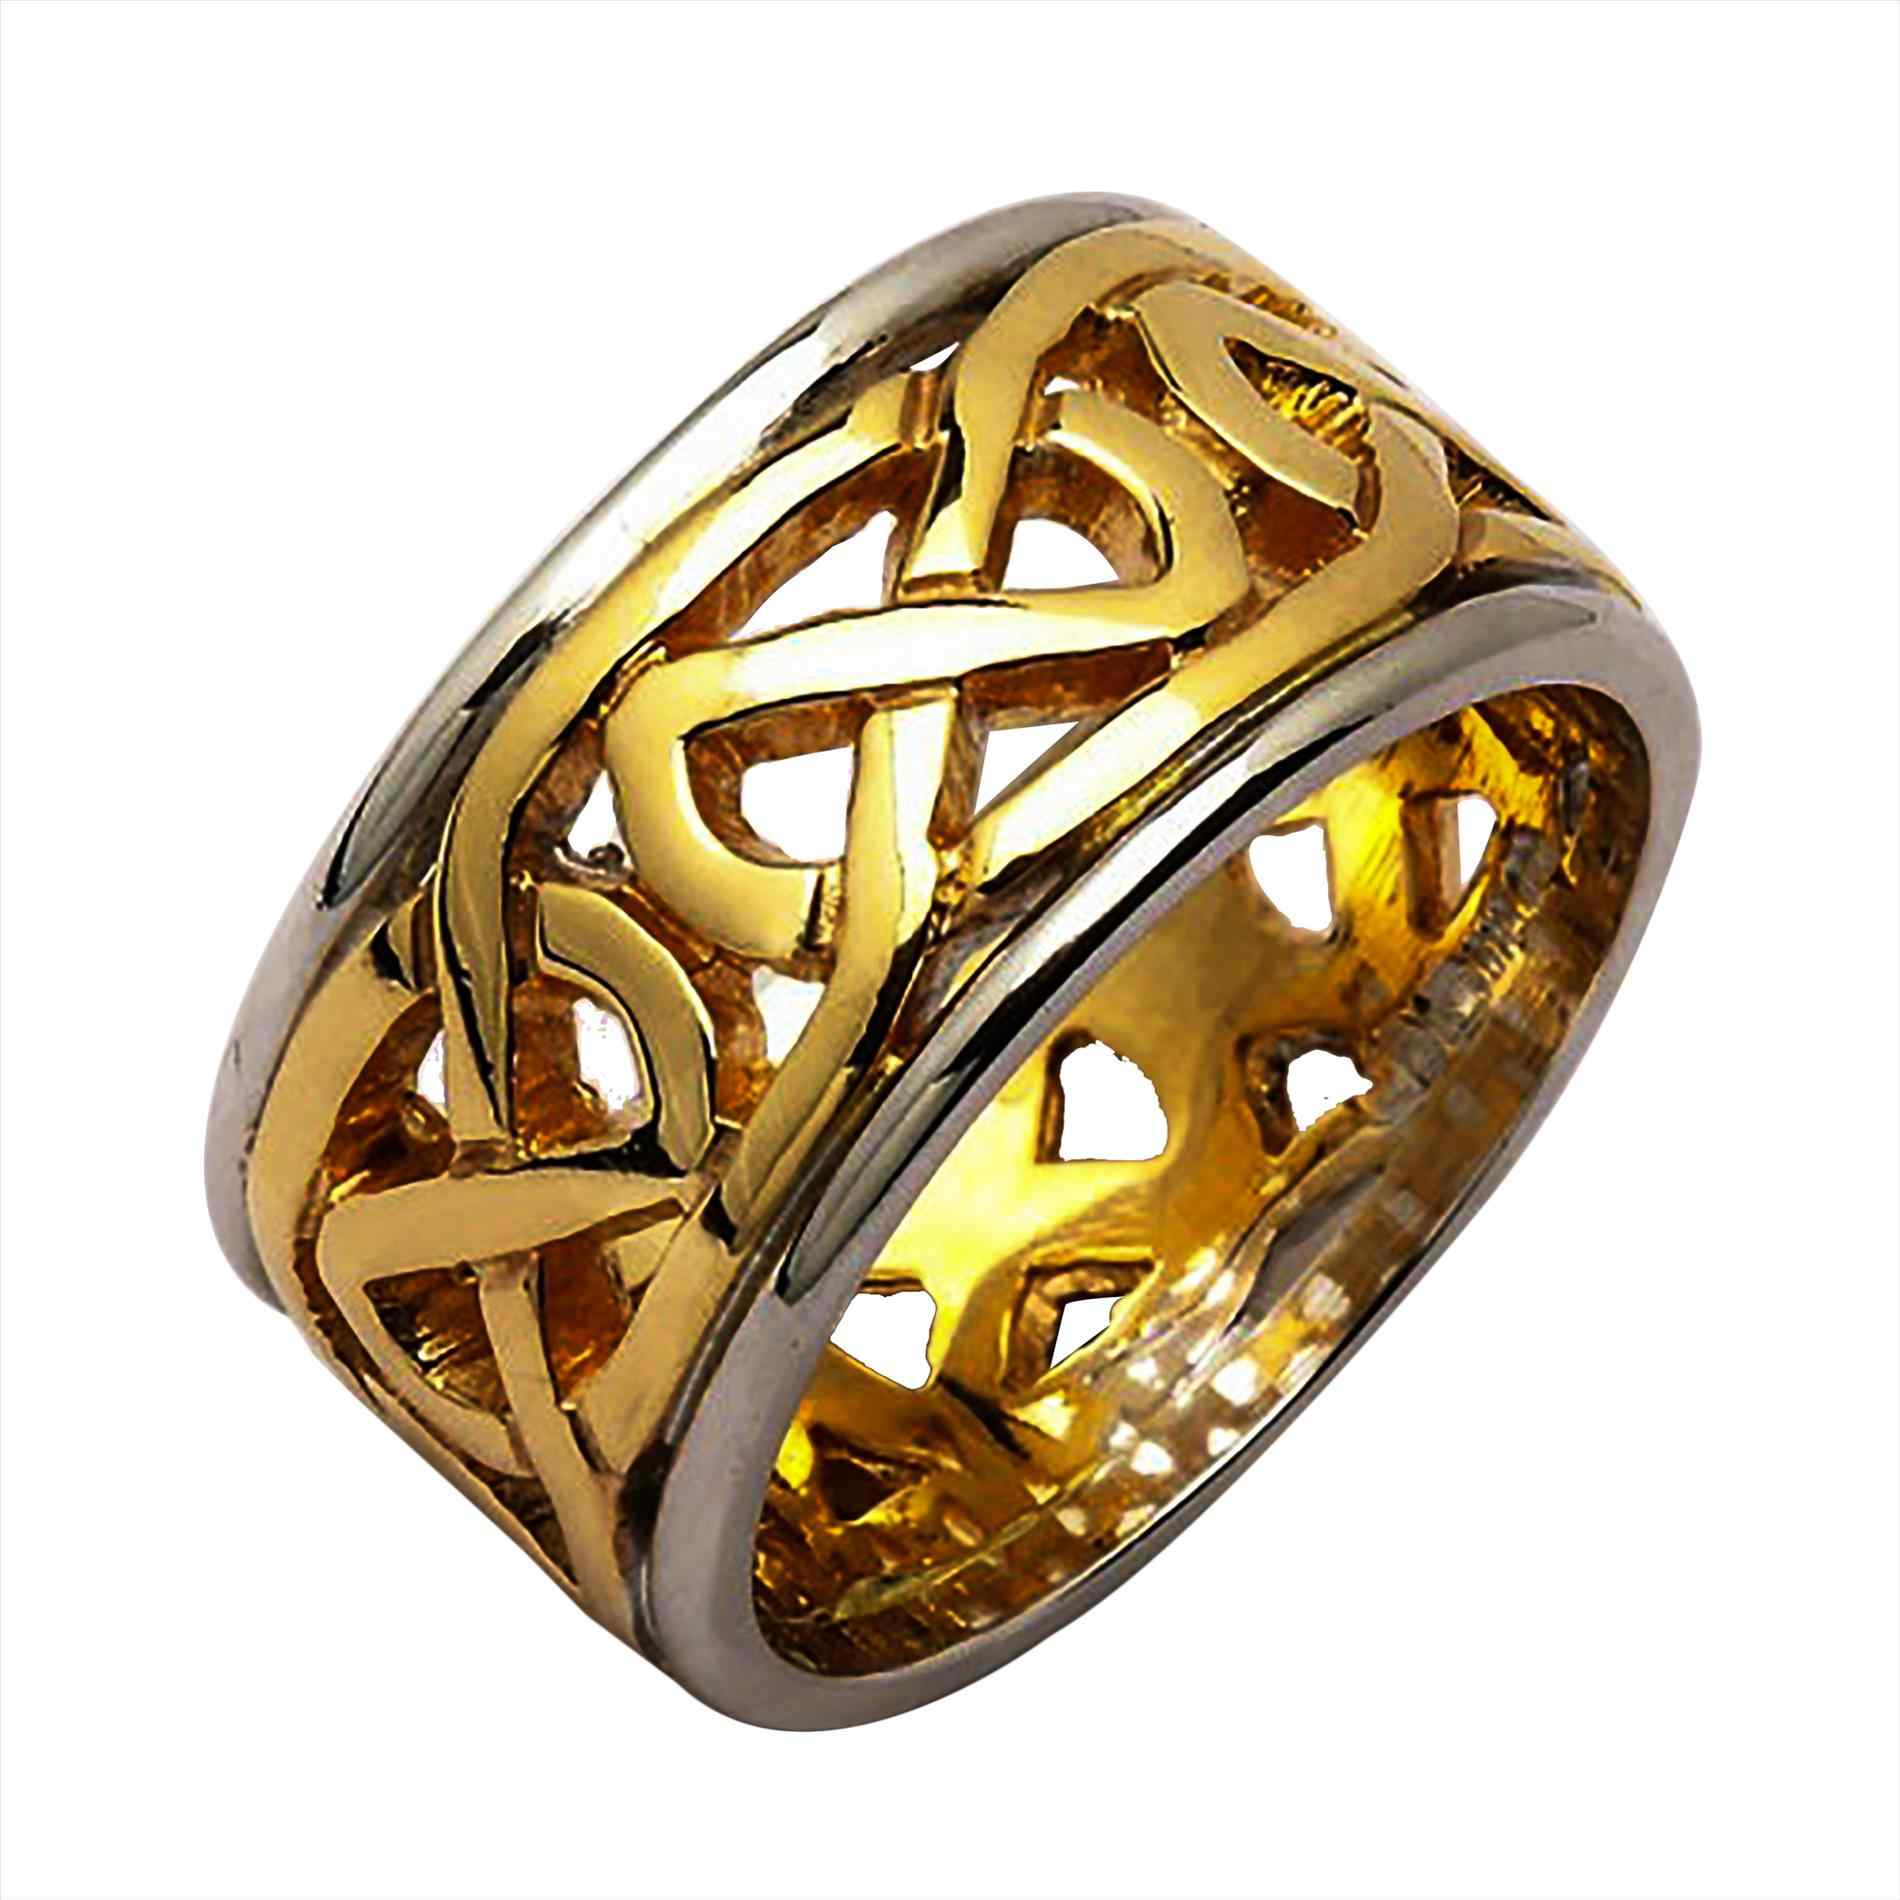 pagan jewellery streeter alex engagement rings of popular angels gaelic pagans view inside and